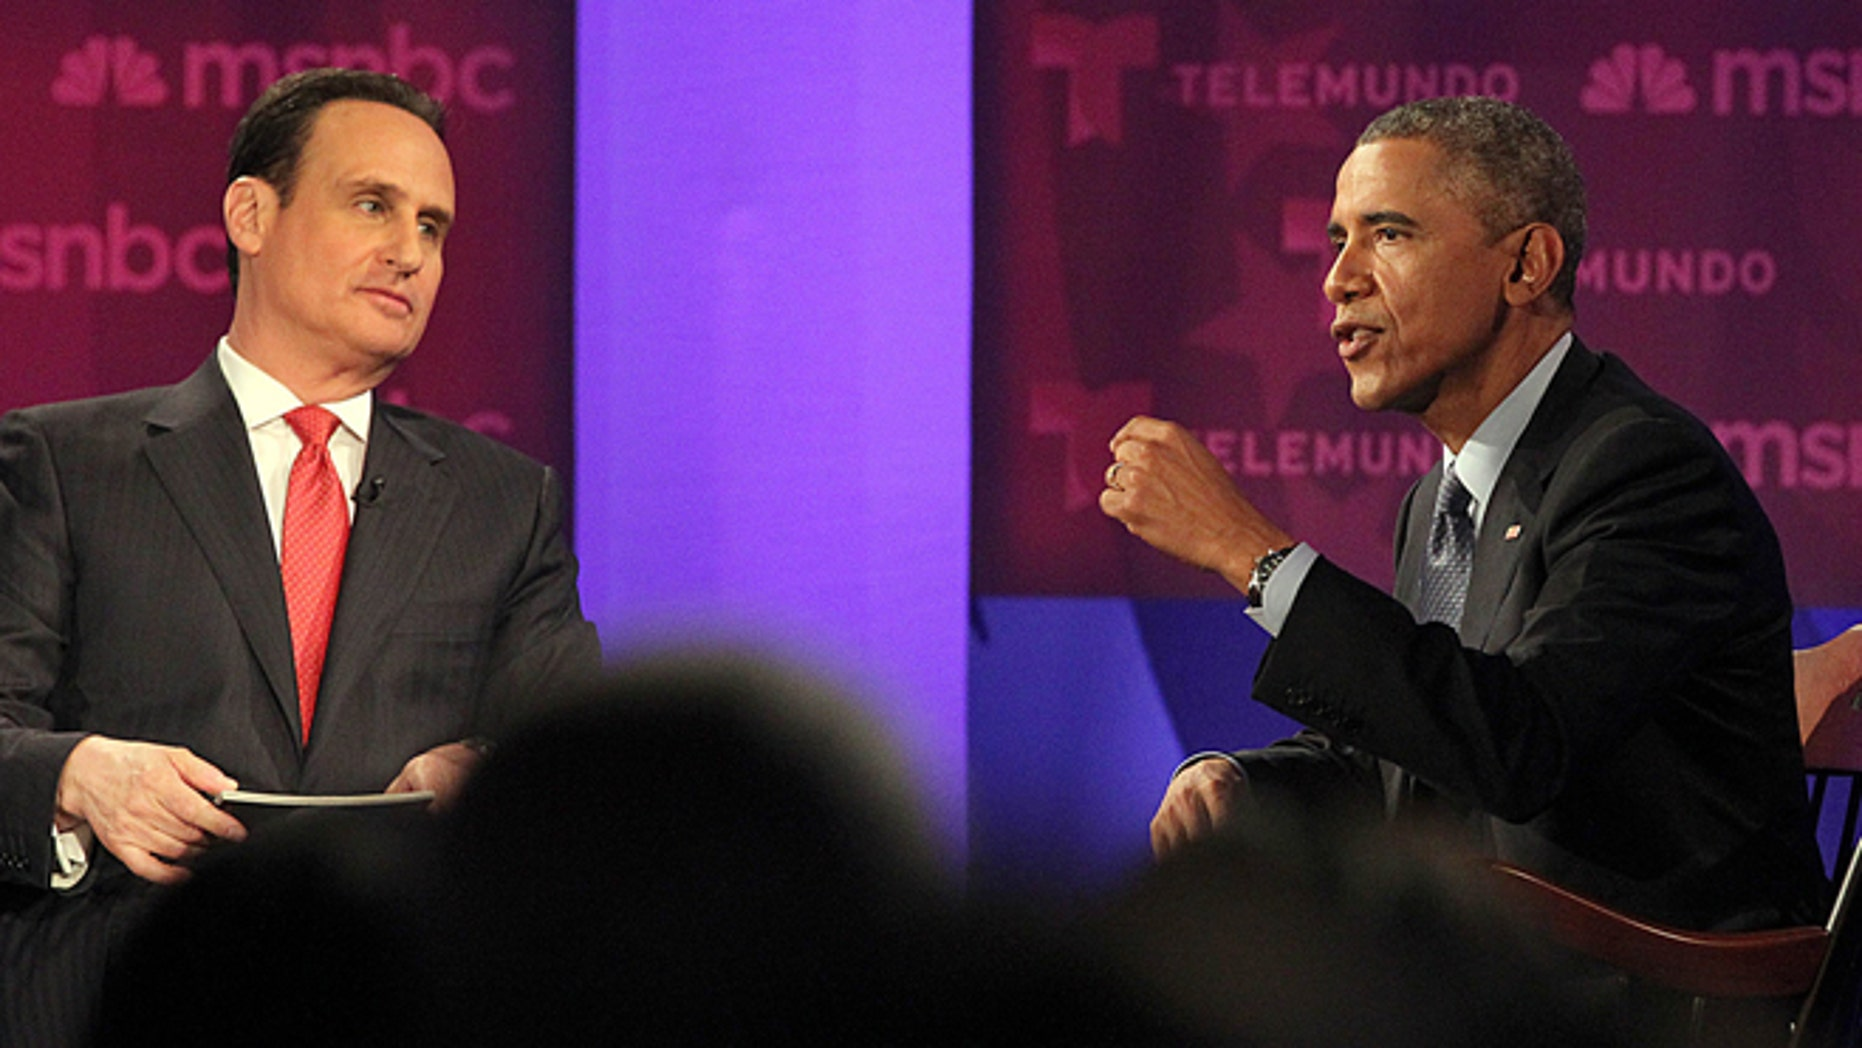 President Barack Obama, right, gestures during a town hall meeting on immigration with Jose Diaz-Balart, hosted by Telemundo and MSNBC, Wednesday, Feb. 25, 2015, at Florida International University in Miami. (AP Photo/El Nuevo Herald, Pedro Portal, Pool)